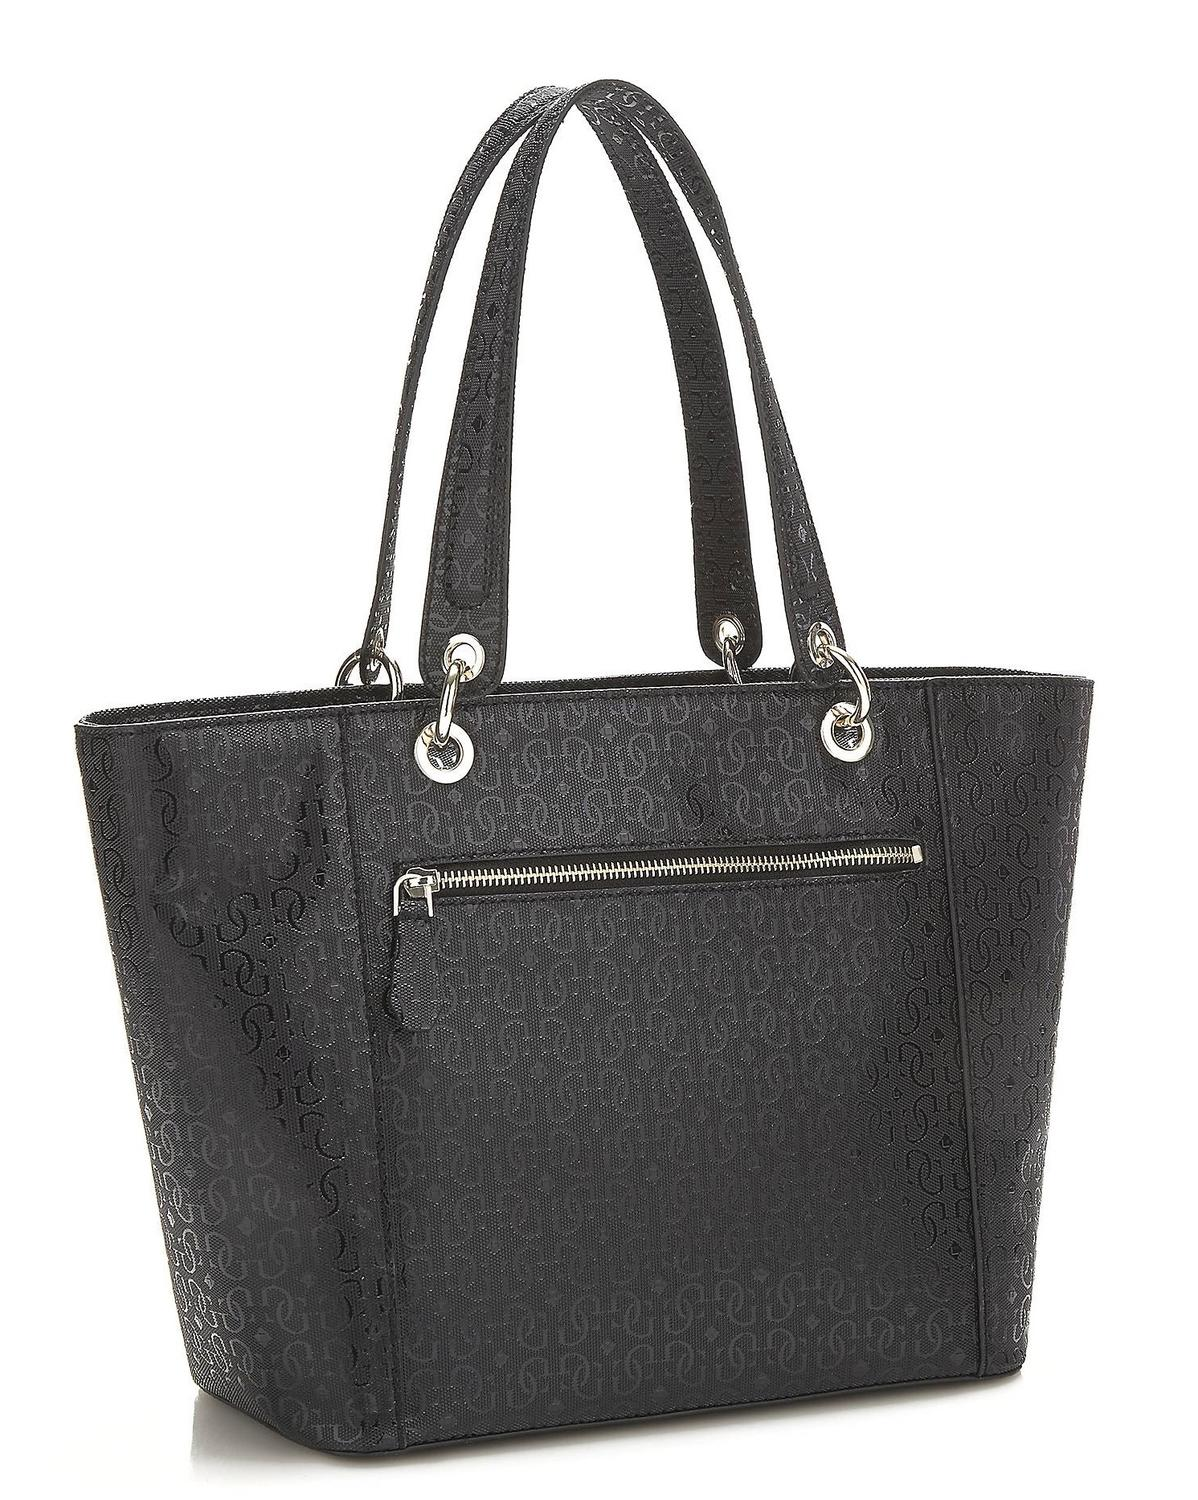 b4da5a763ad Guess Kamryn Shoulder Bag - Shop Online At Best Prices!